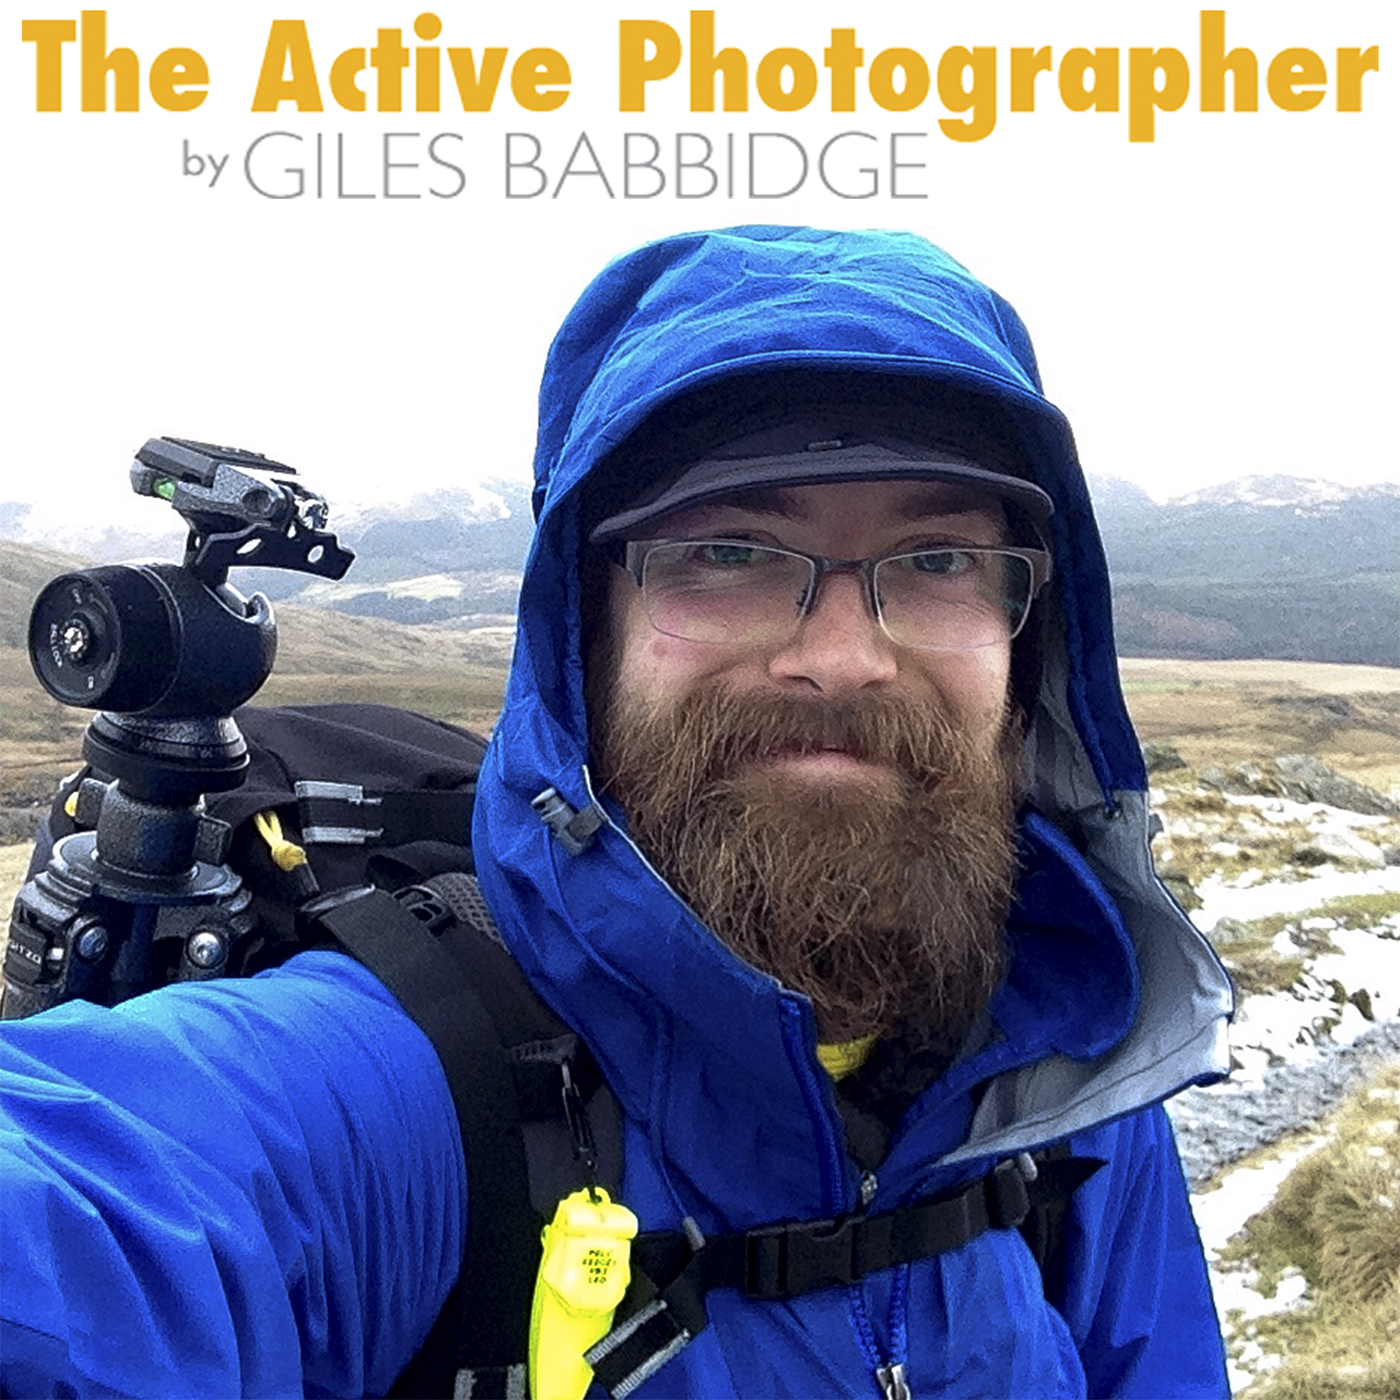 The Active Photographer